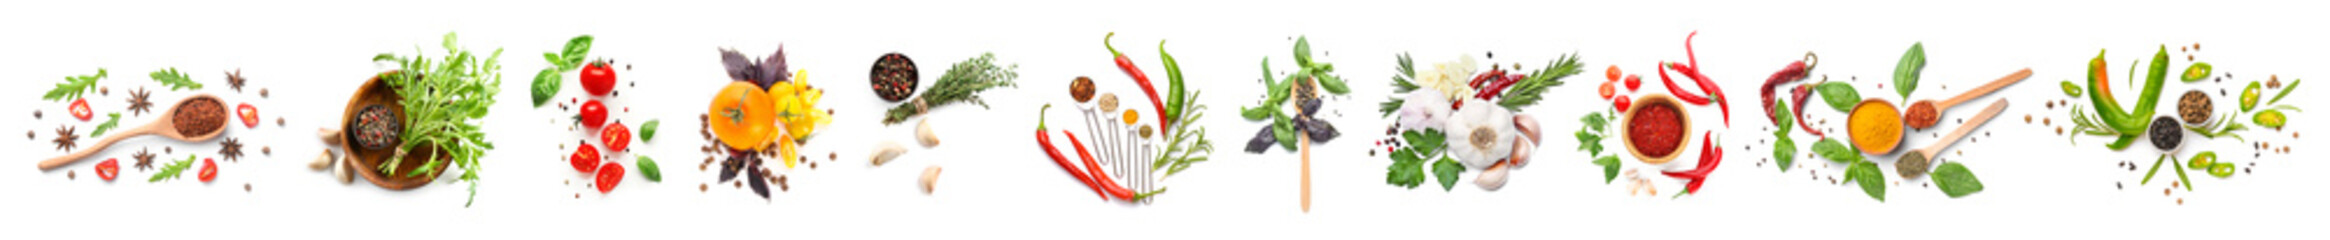 Poster de jardin Légumes frais Different fresh spices, herbs and vegetables on white background